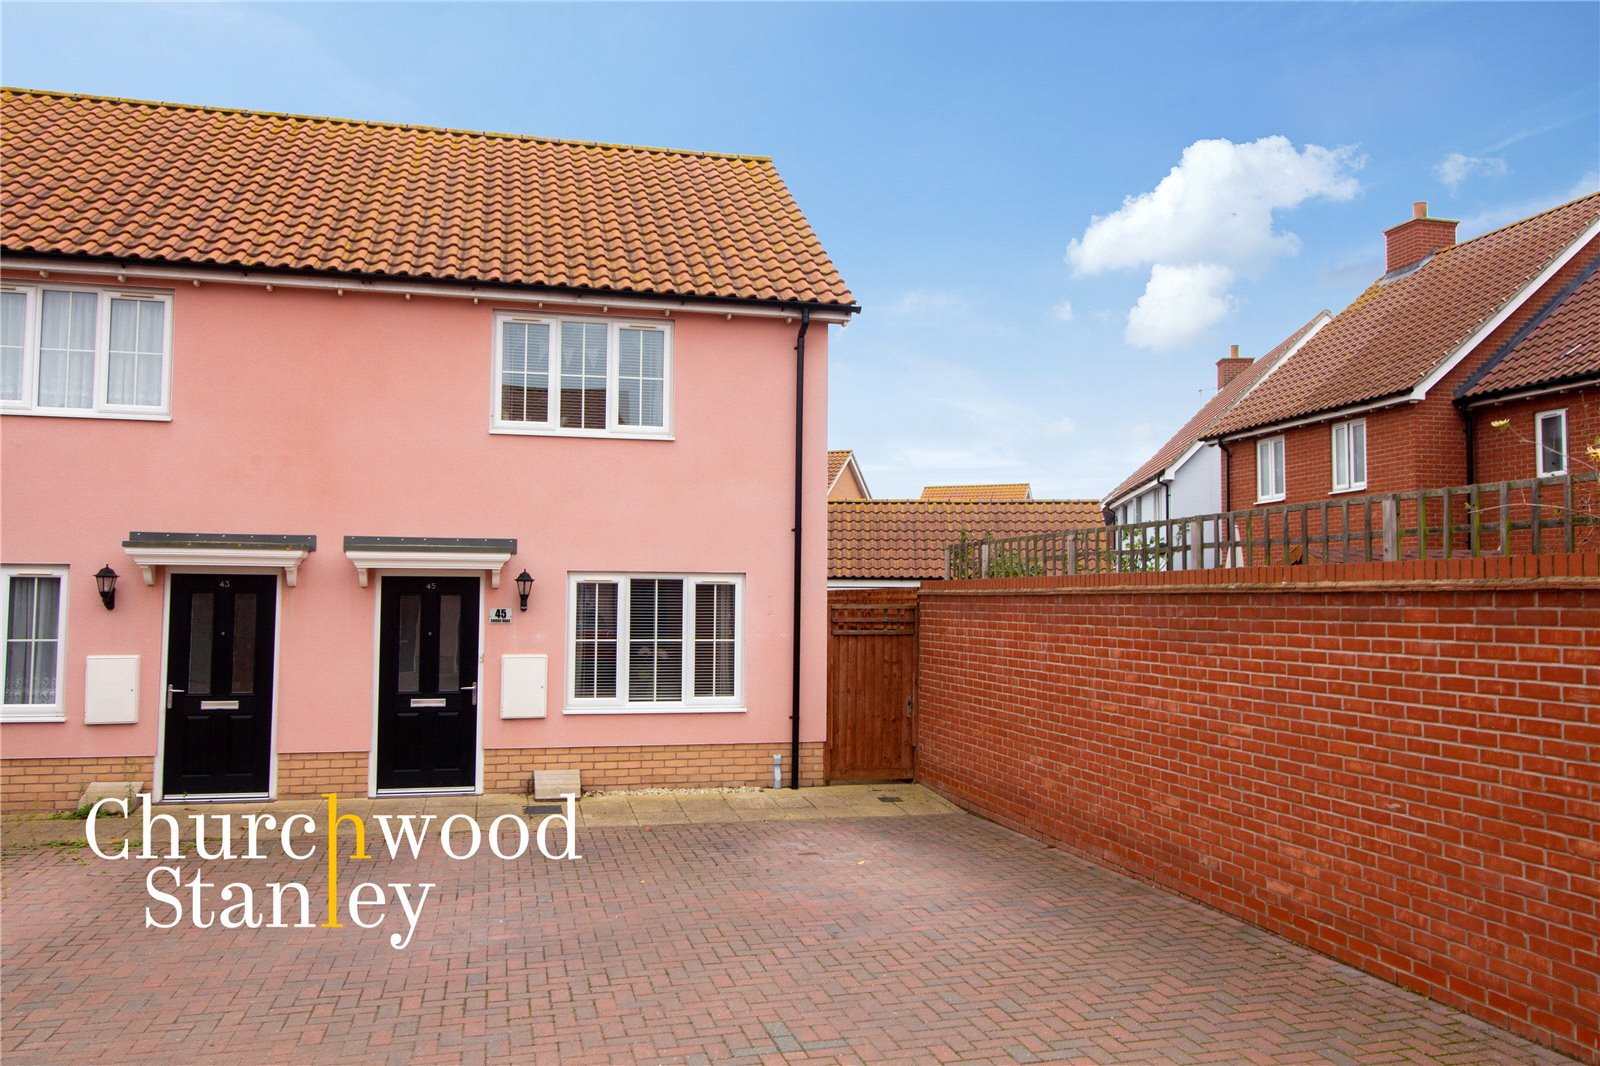 2 bed semi-detached house for sale in Cross Road, Clacton-on-Sea, CO16